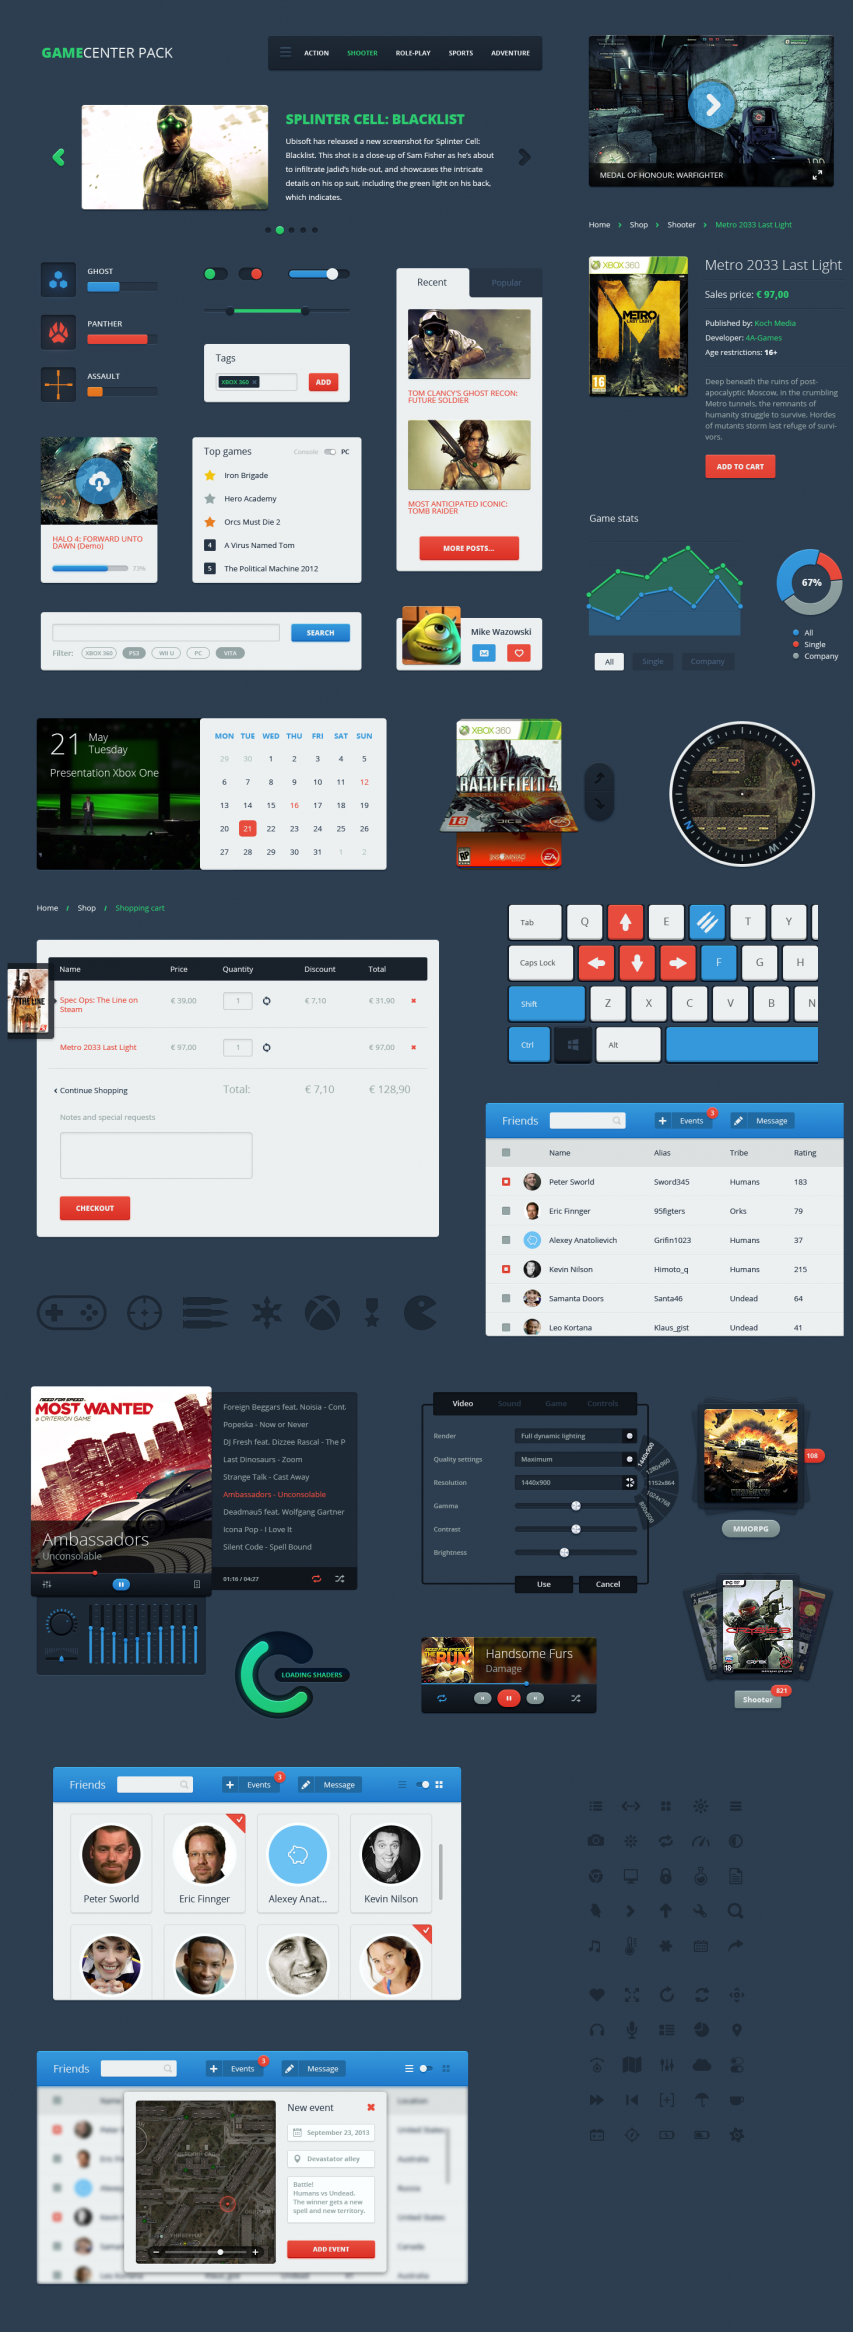 Gamecenter Complete UI Elements Kit PSD